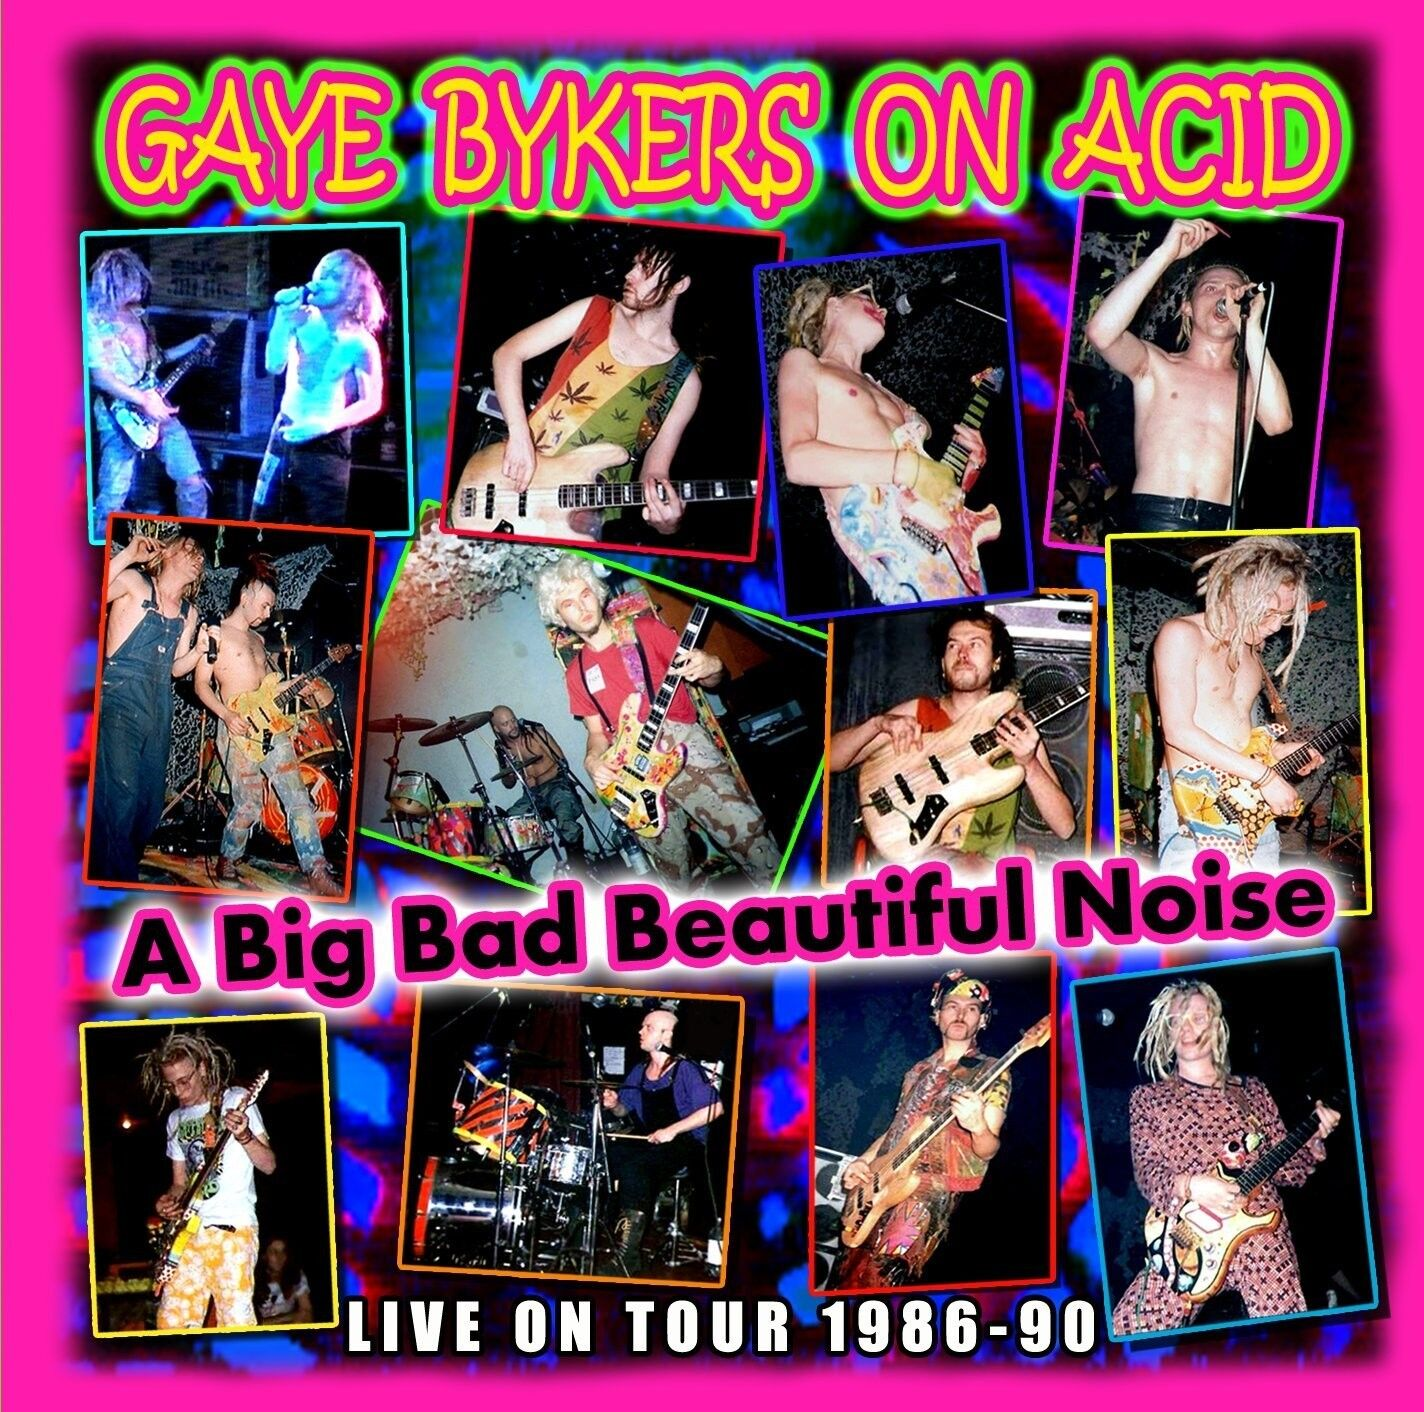 A Big Bad Beautiful Noize (Live 1986-90) - Gaye Bykers On Acid [Cd] 0